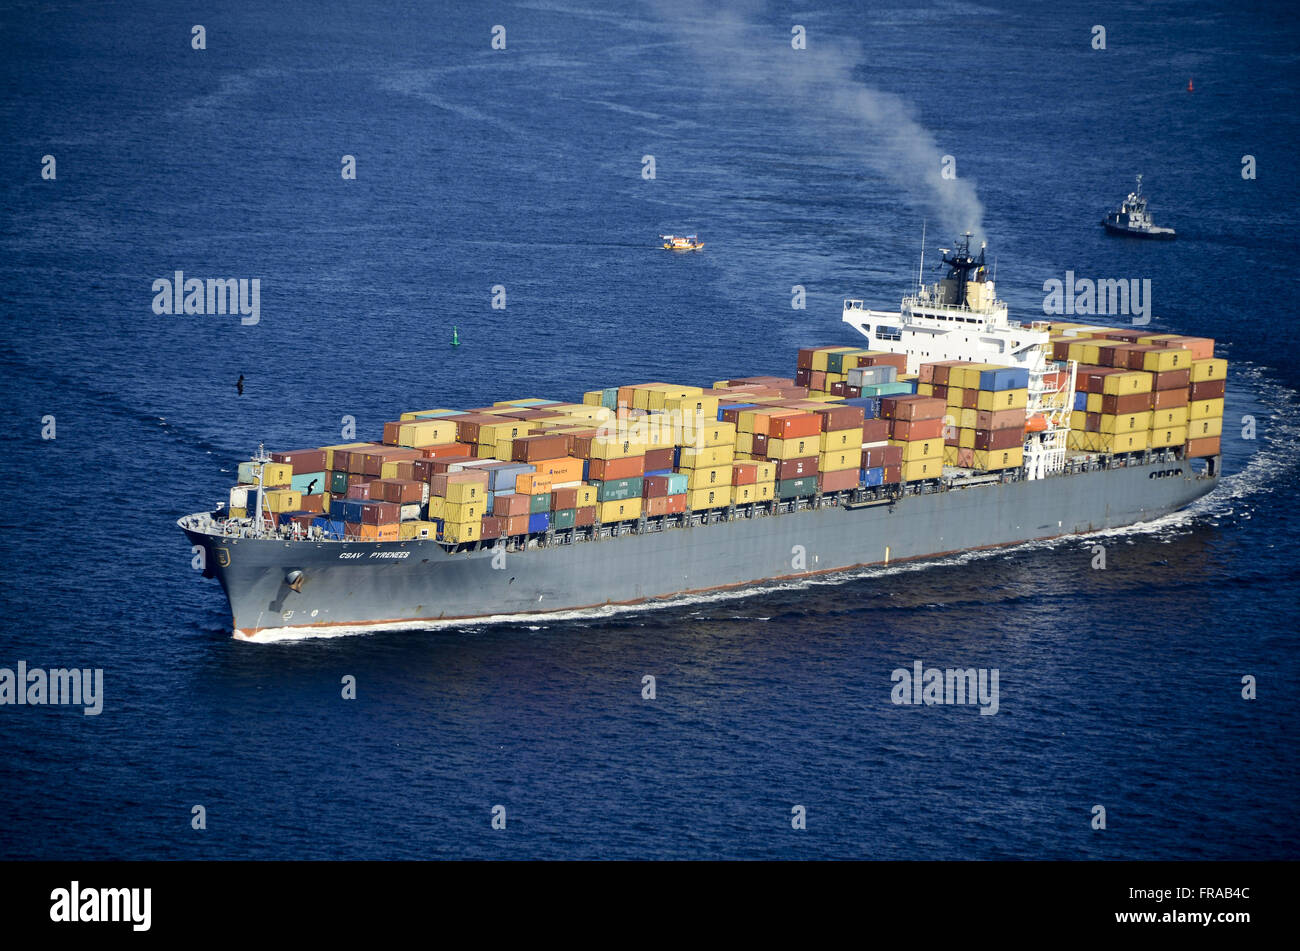 Aerial view of cargo ship in the Bay of Guanabara - Stock Image